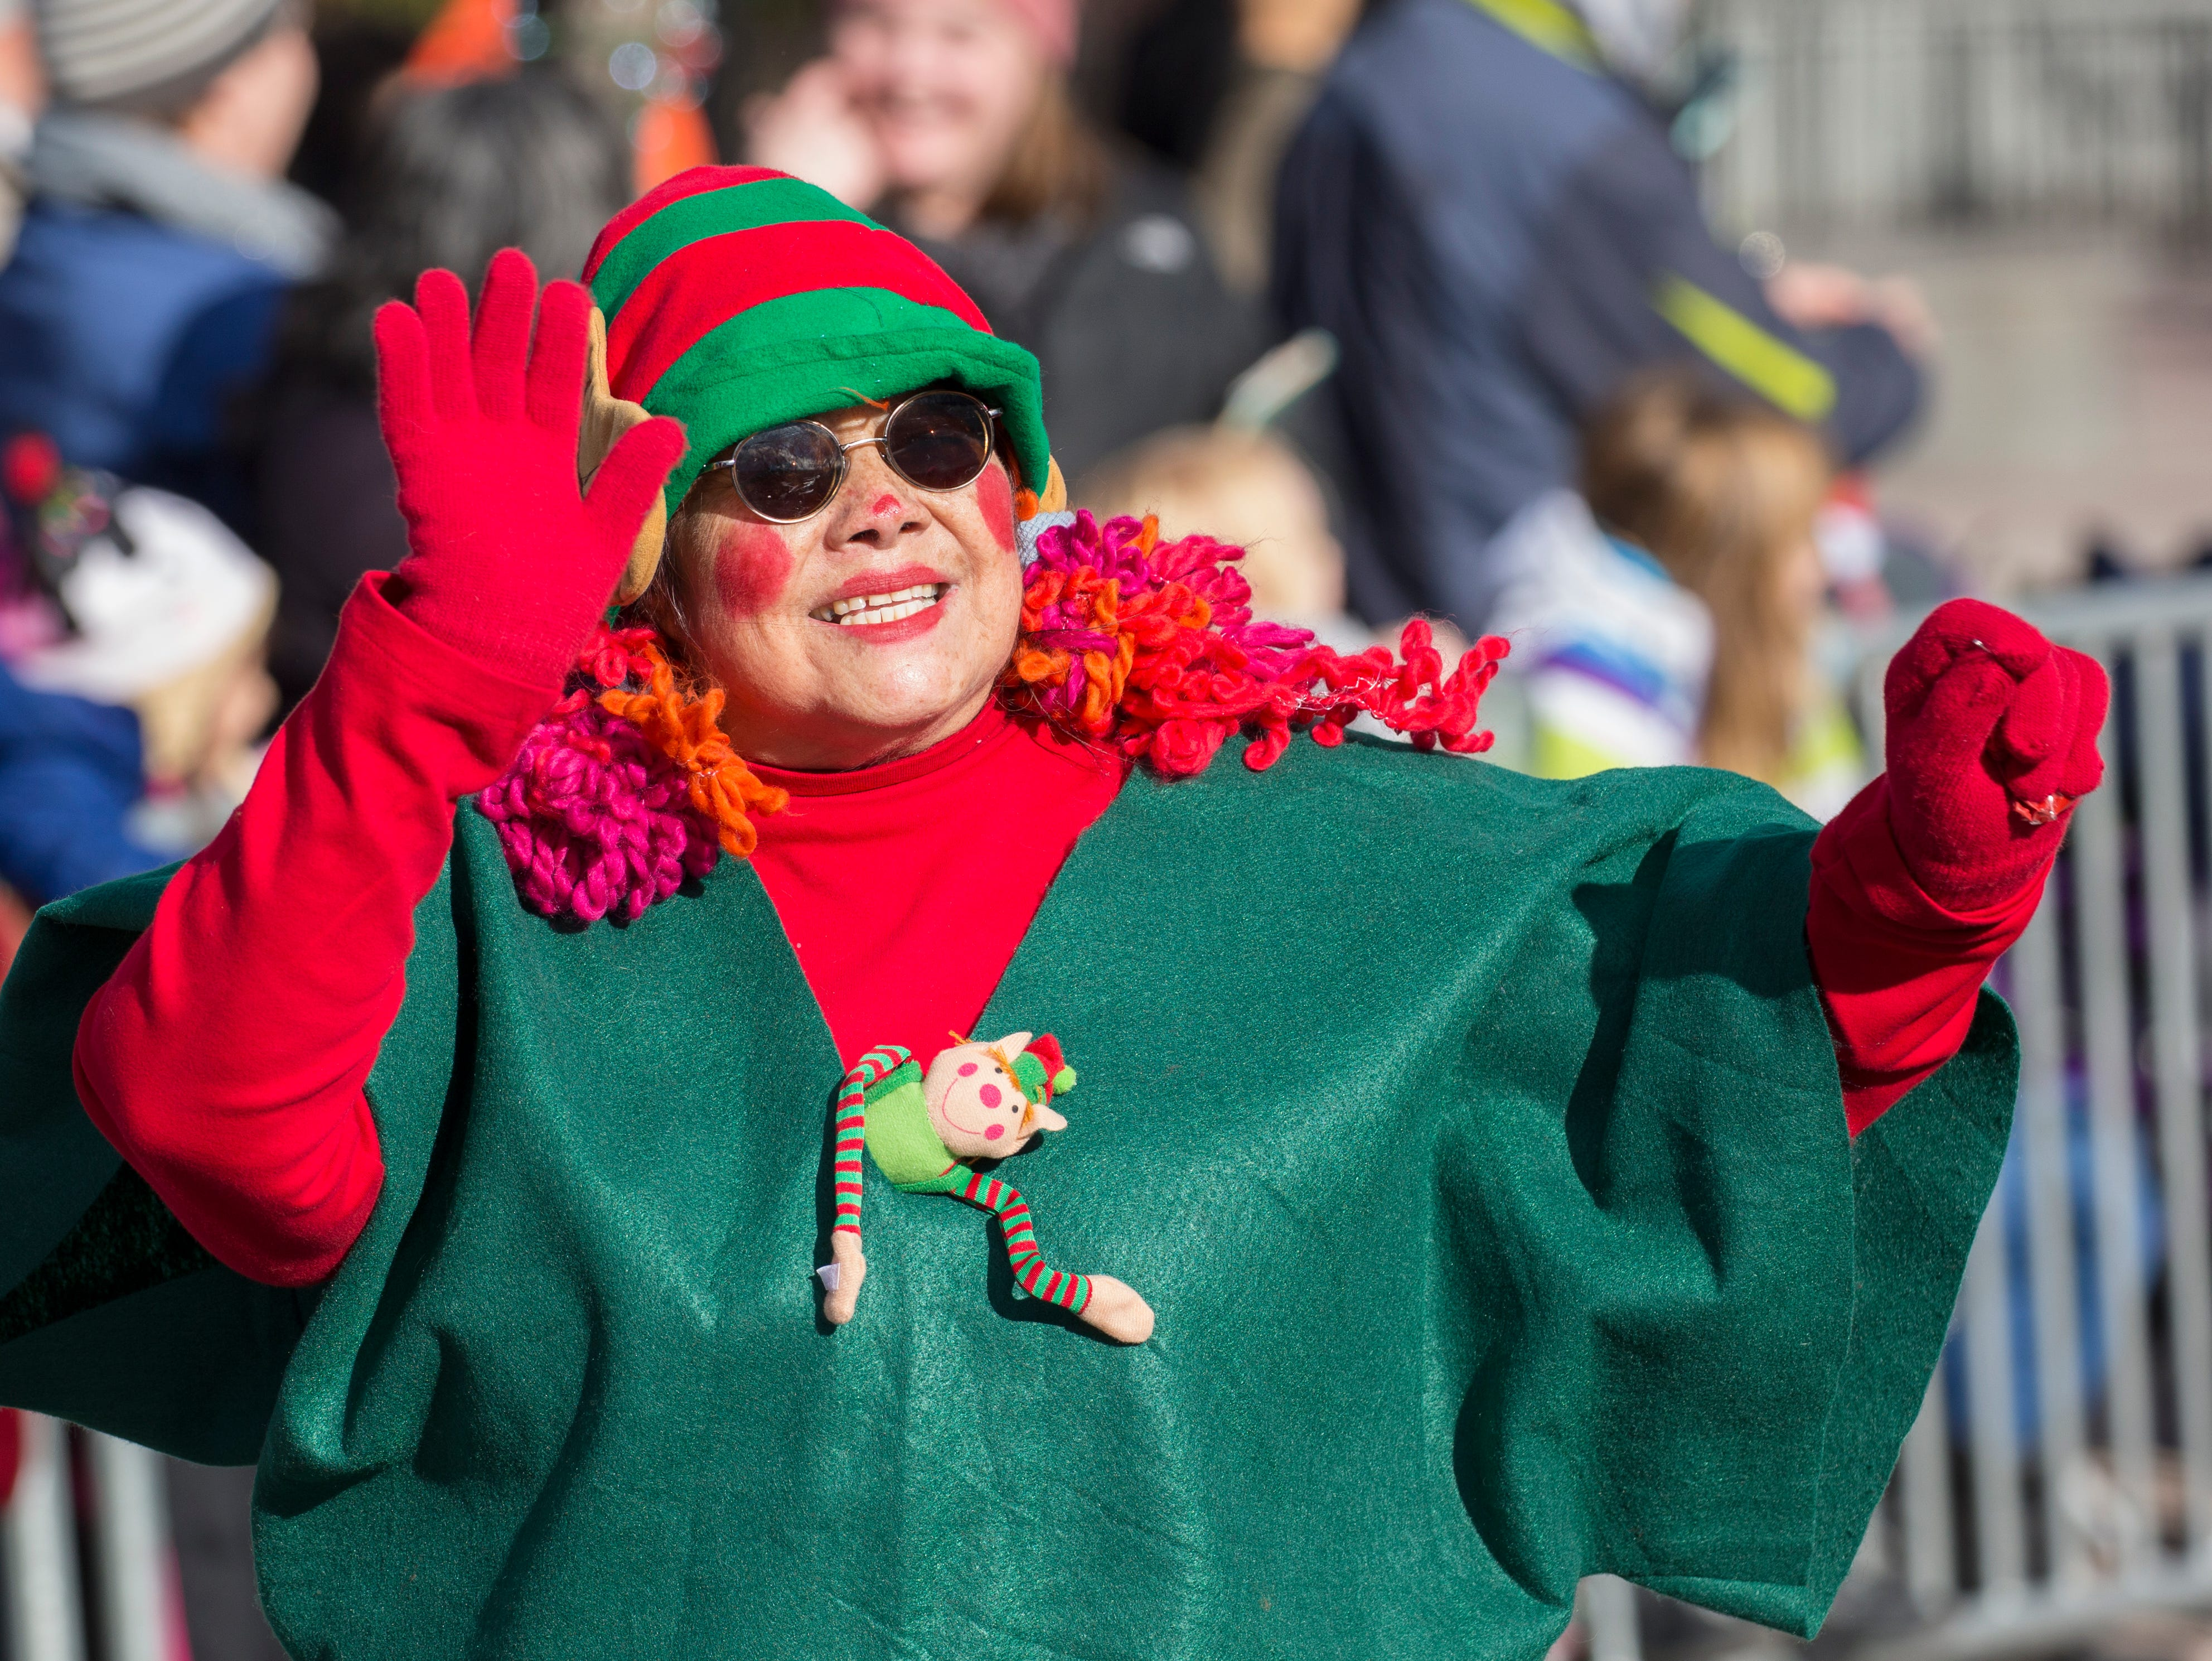 Photos from the Sparks Hometown Christmas parade on Dec. 1